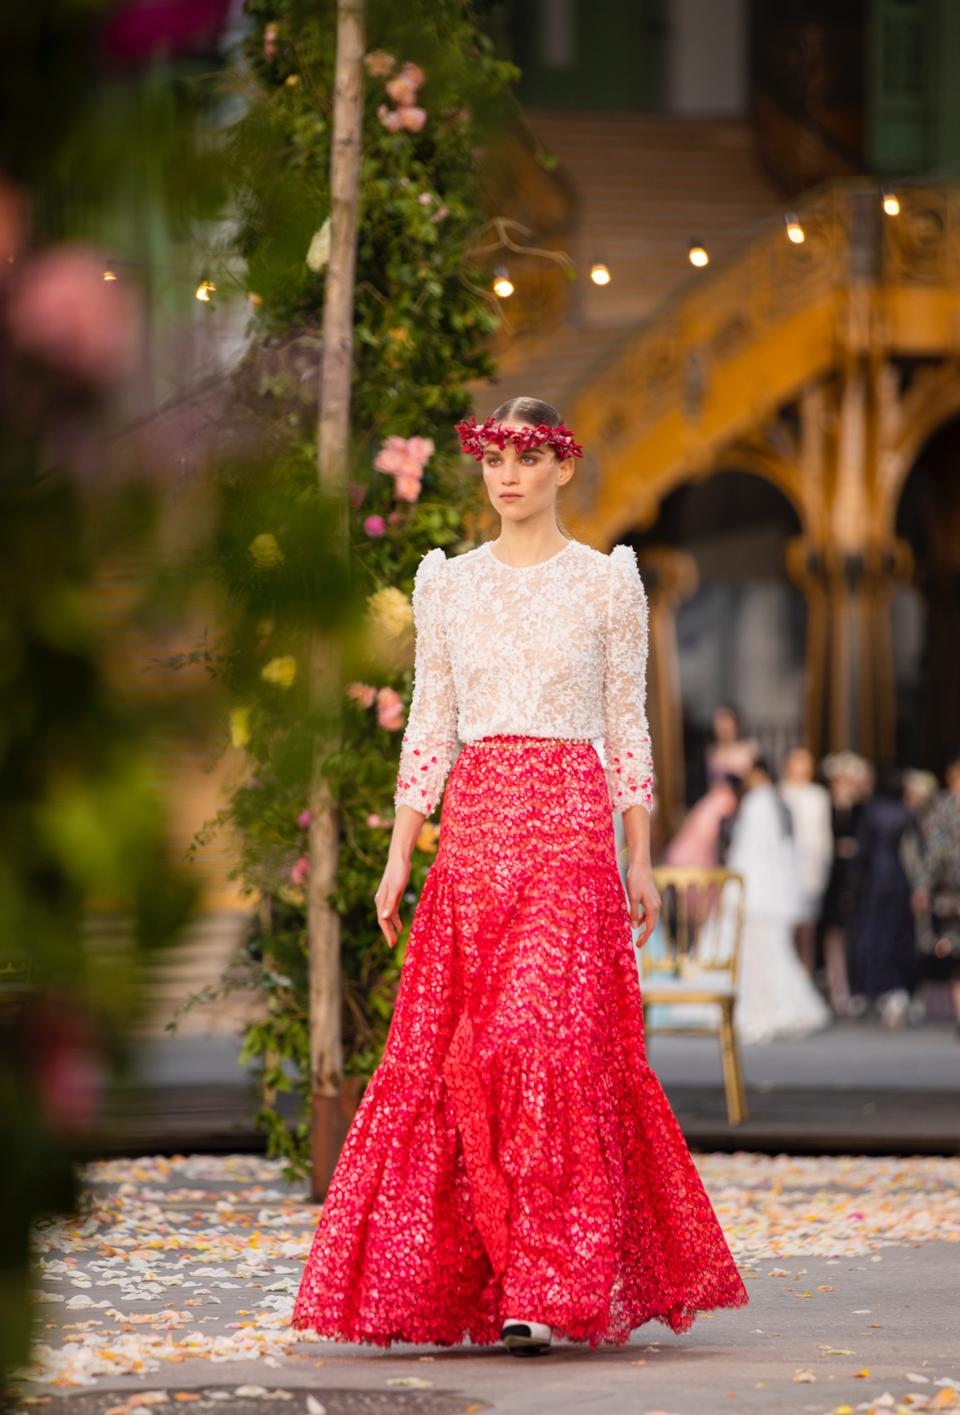 Rebecca Longendyke is wearing a lace white and red ensemble with flower embroidered cuffs